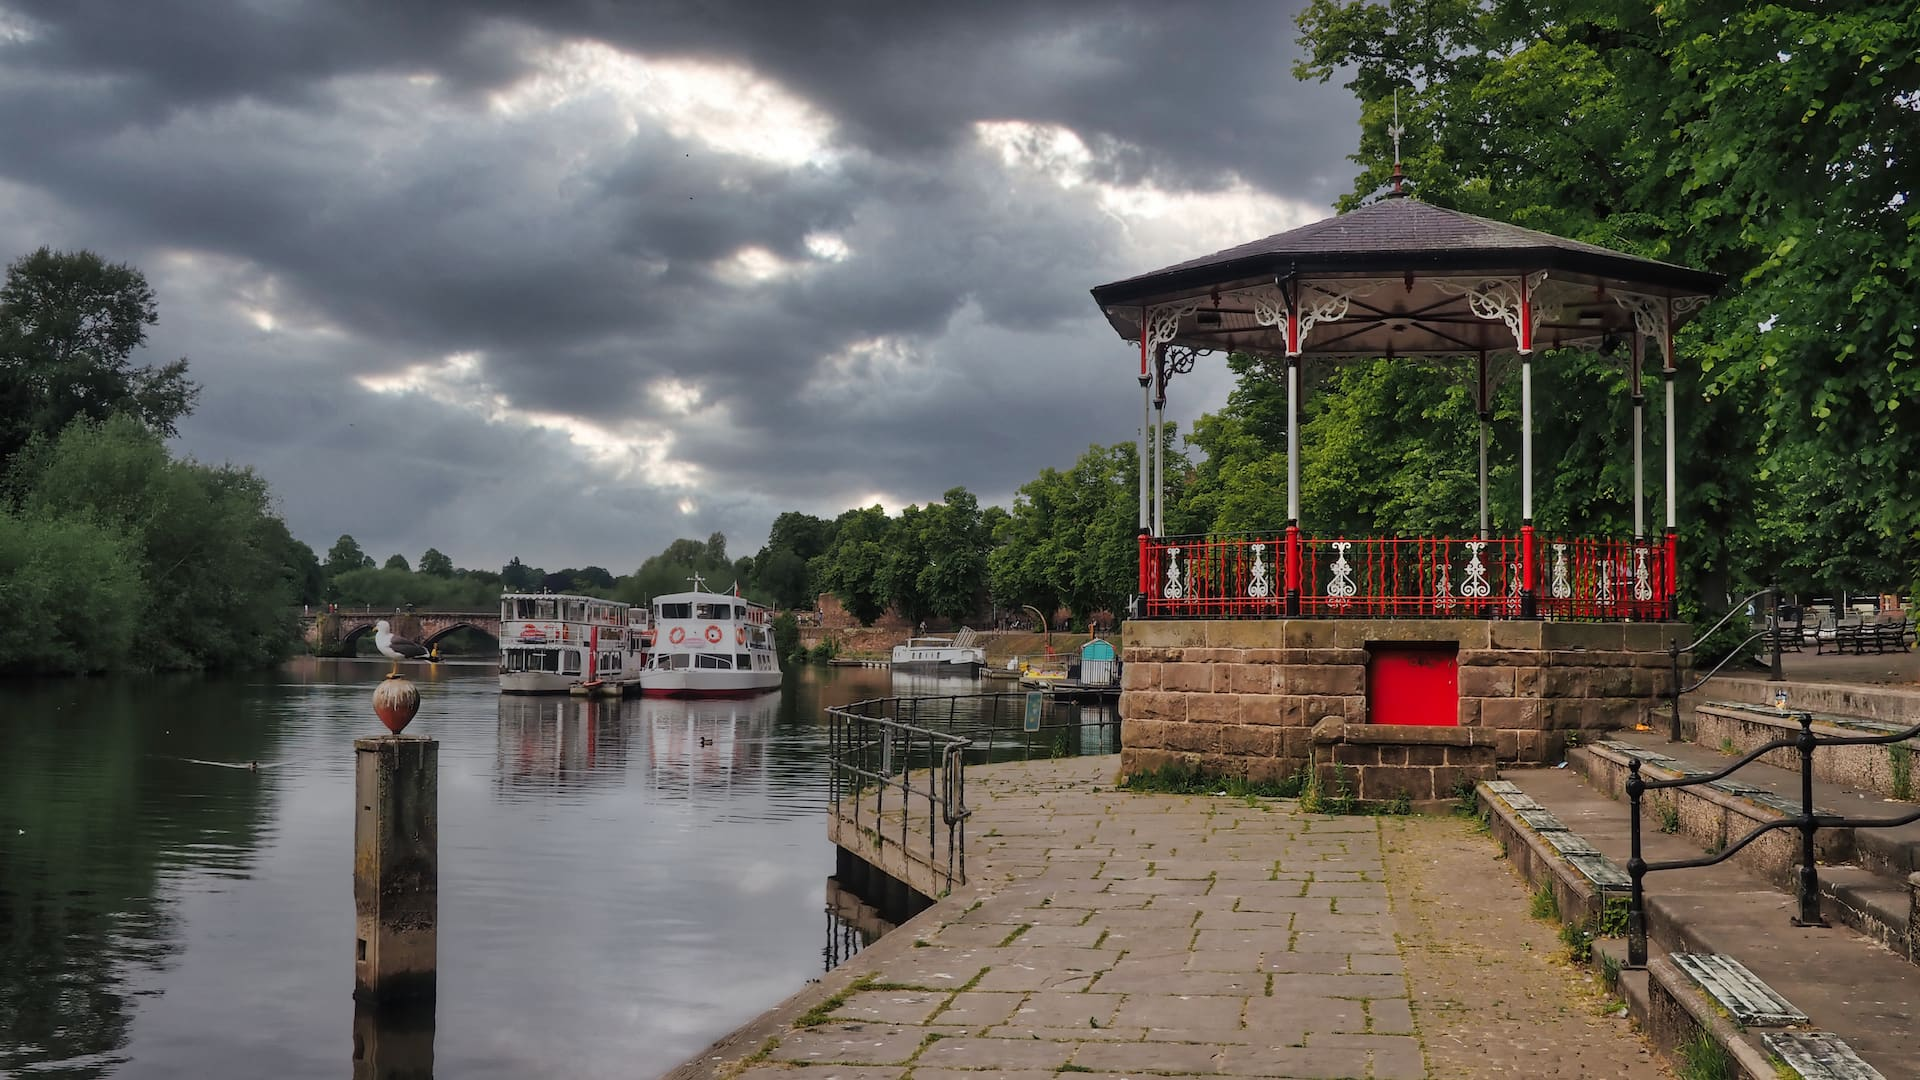 A red pagoda in the foreground stands next to a river with two boats in the background